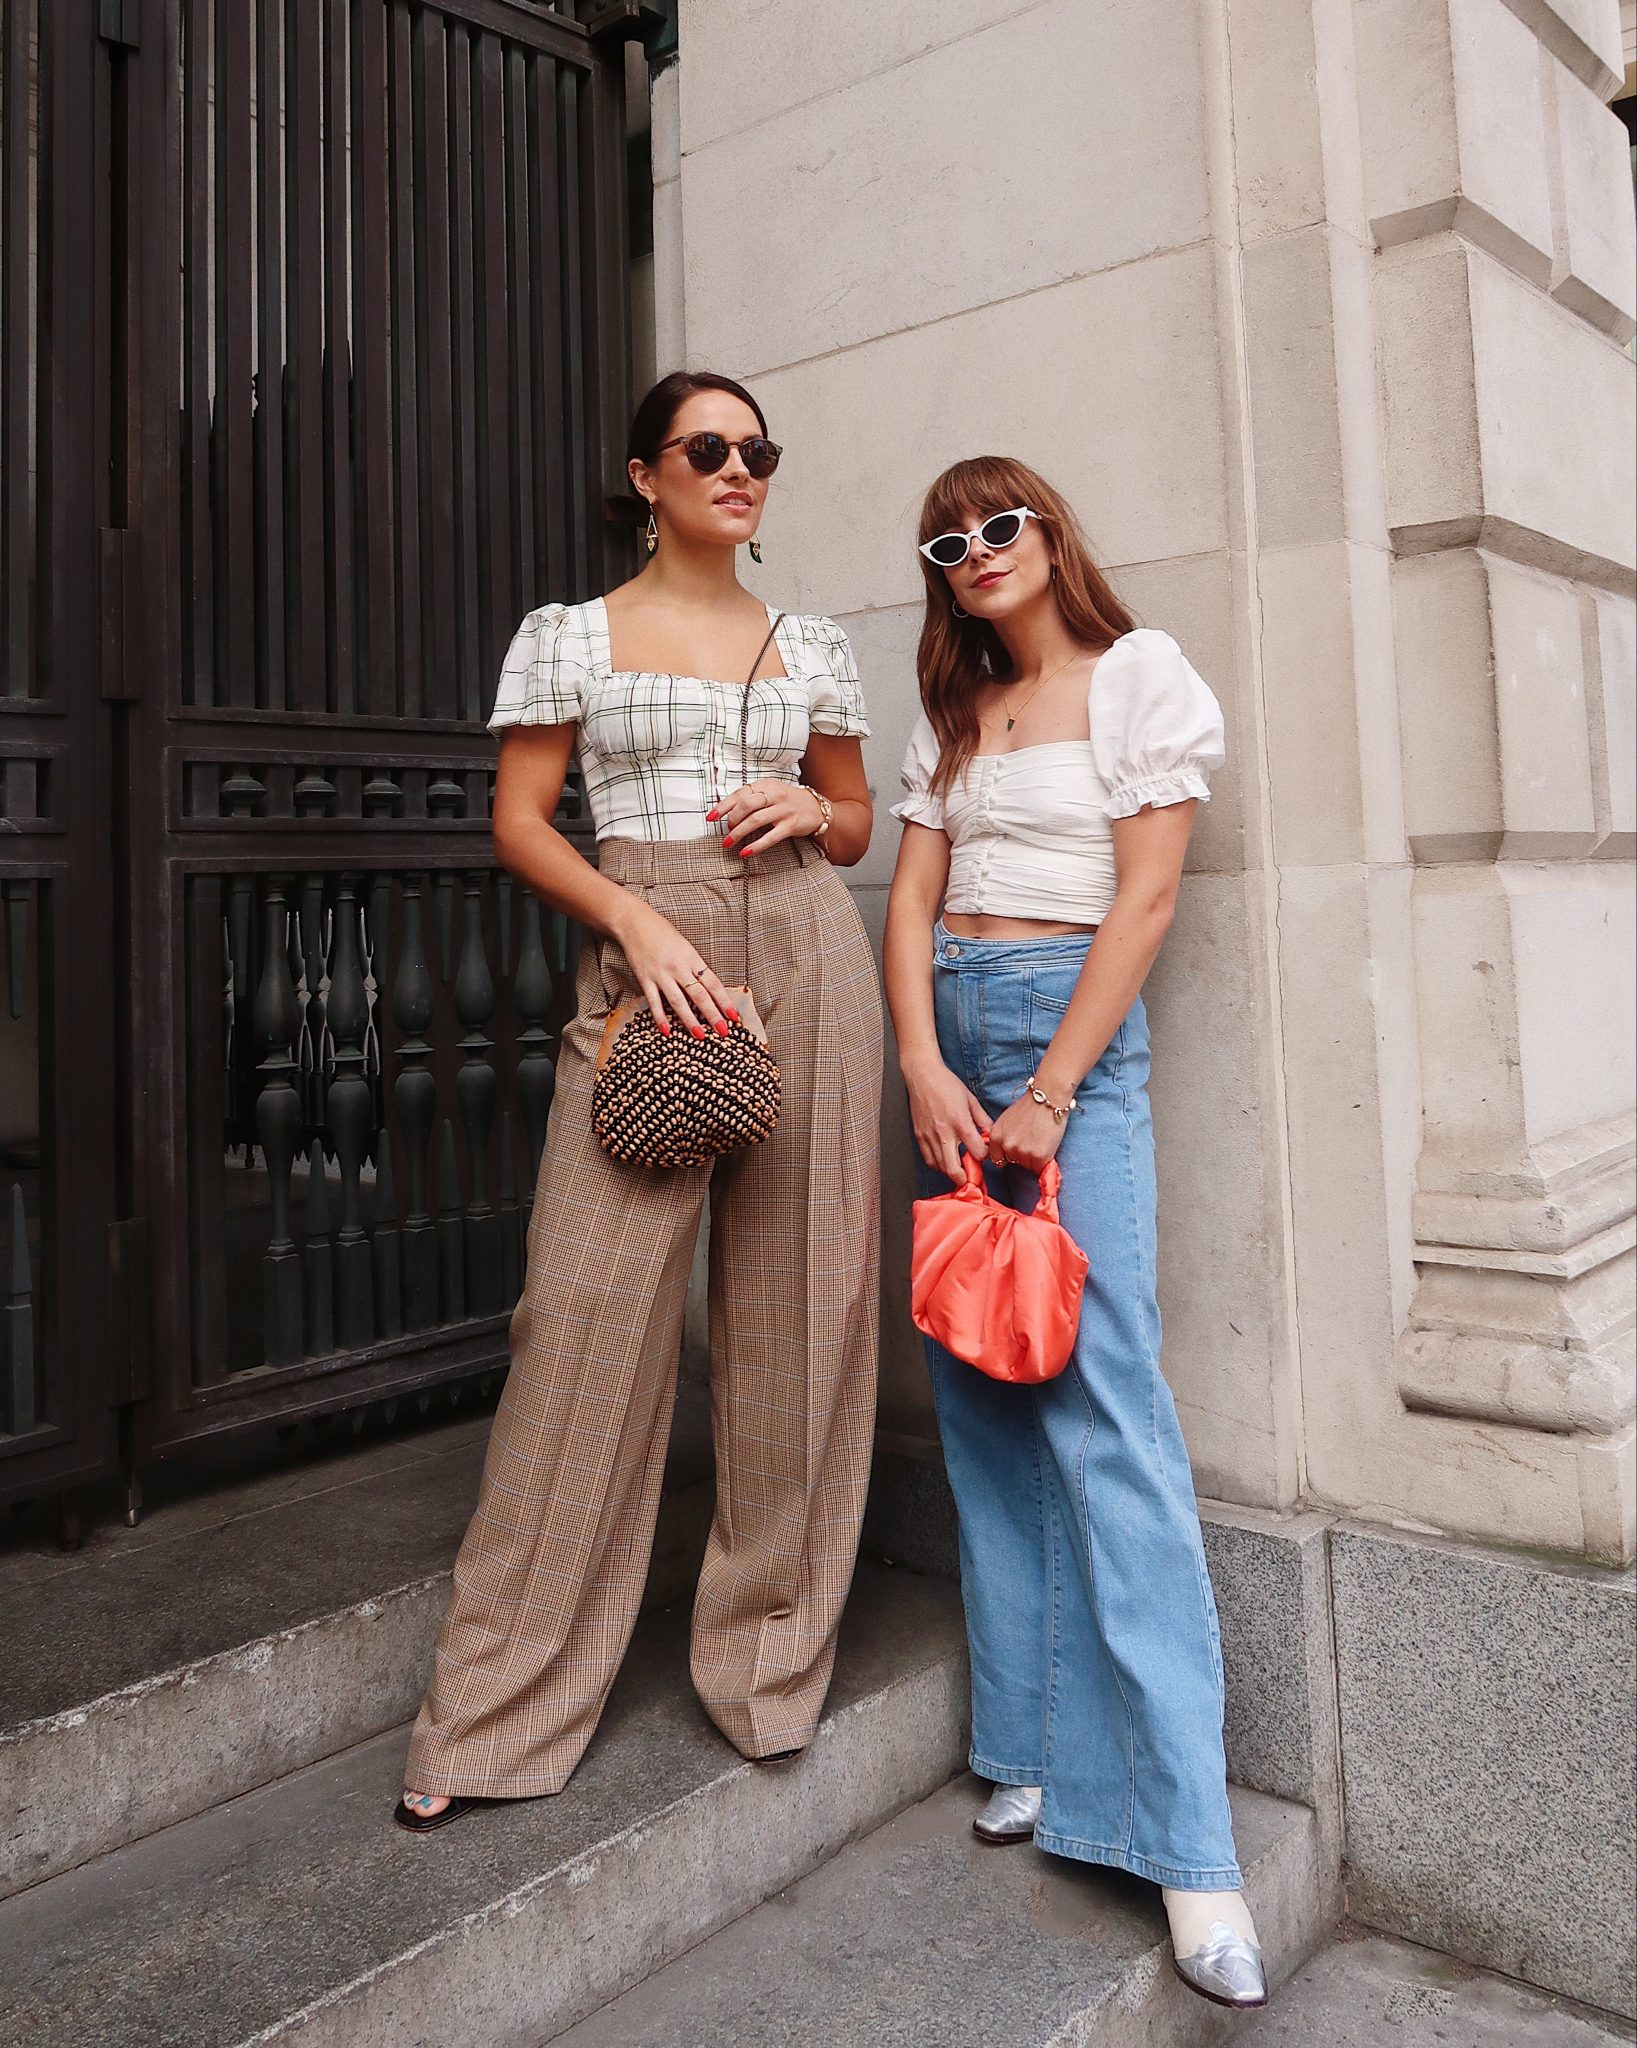 STYLING MILKMAID TOPS